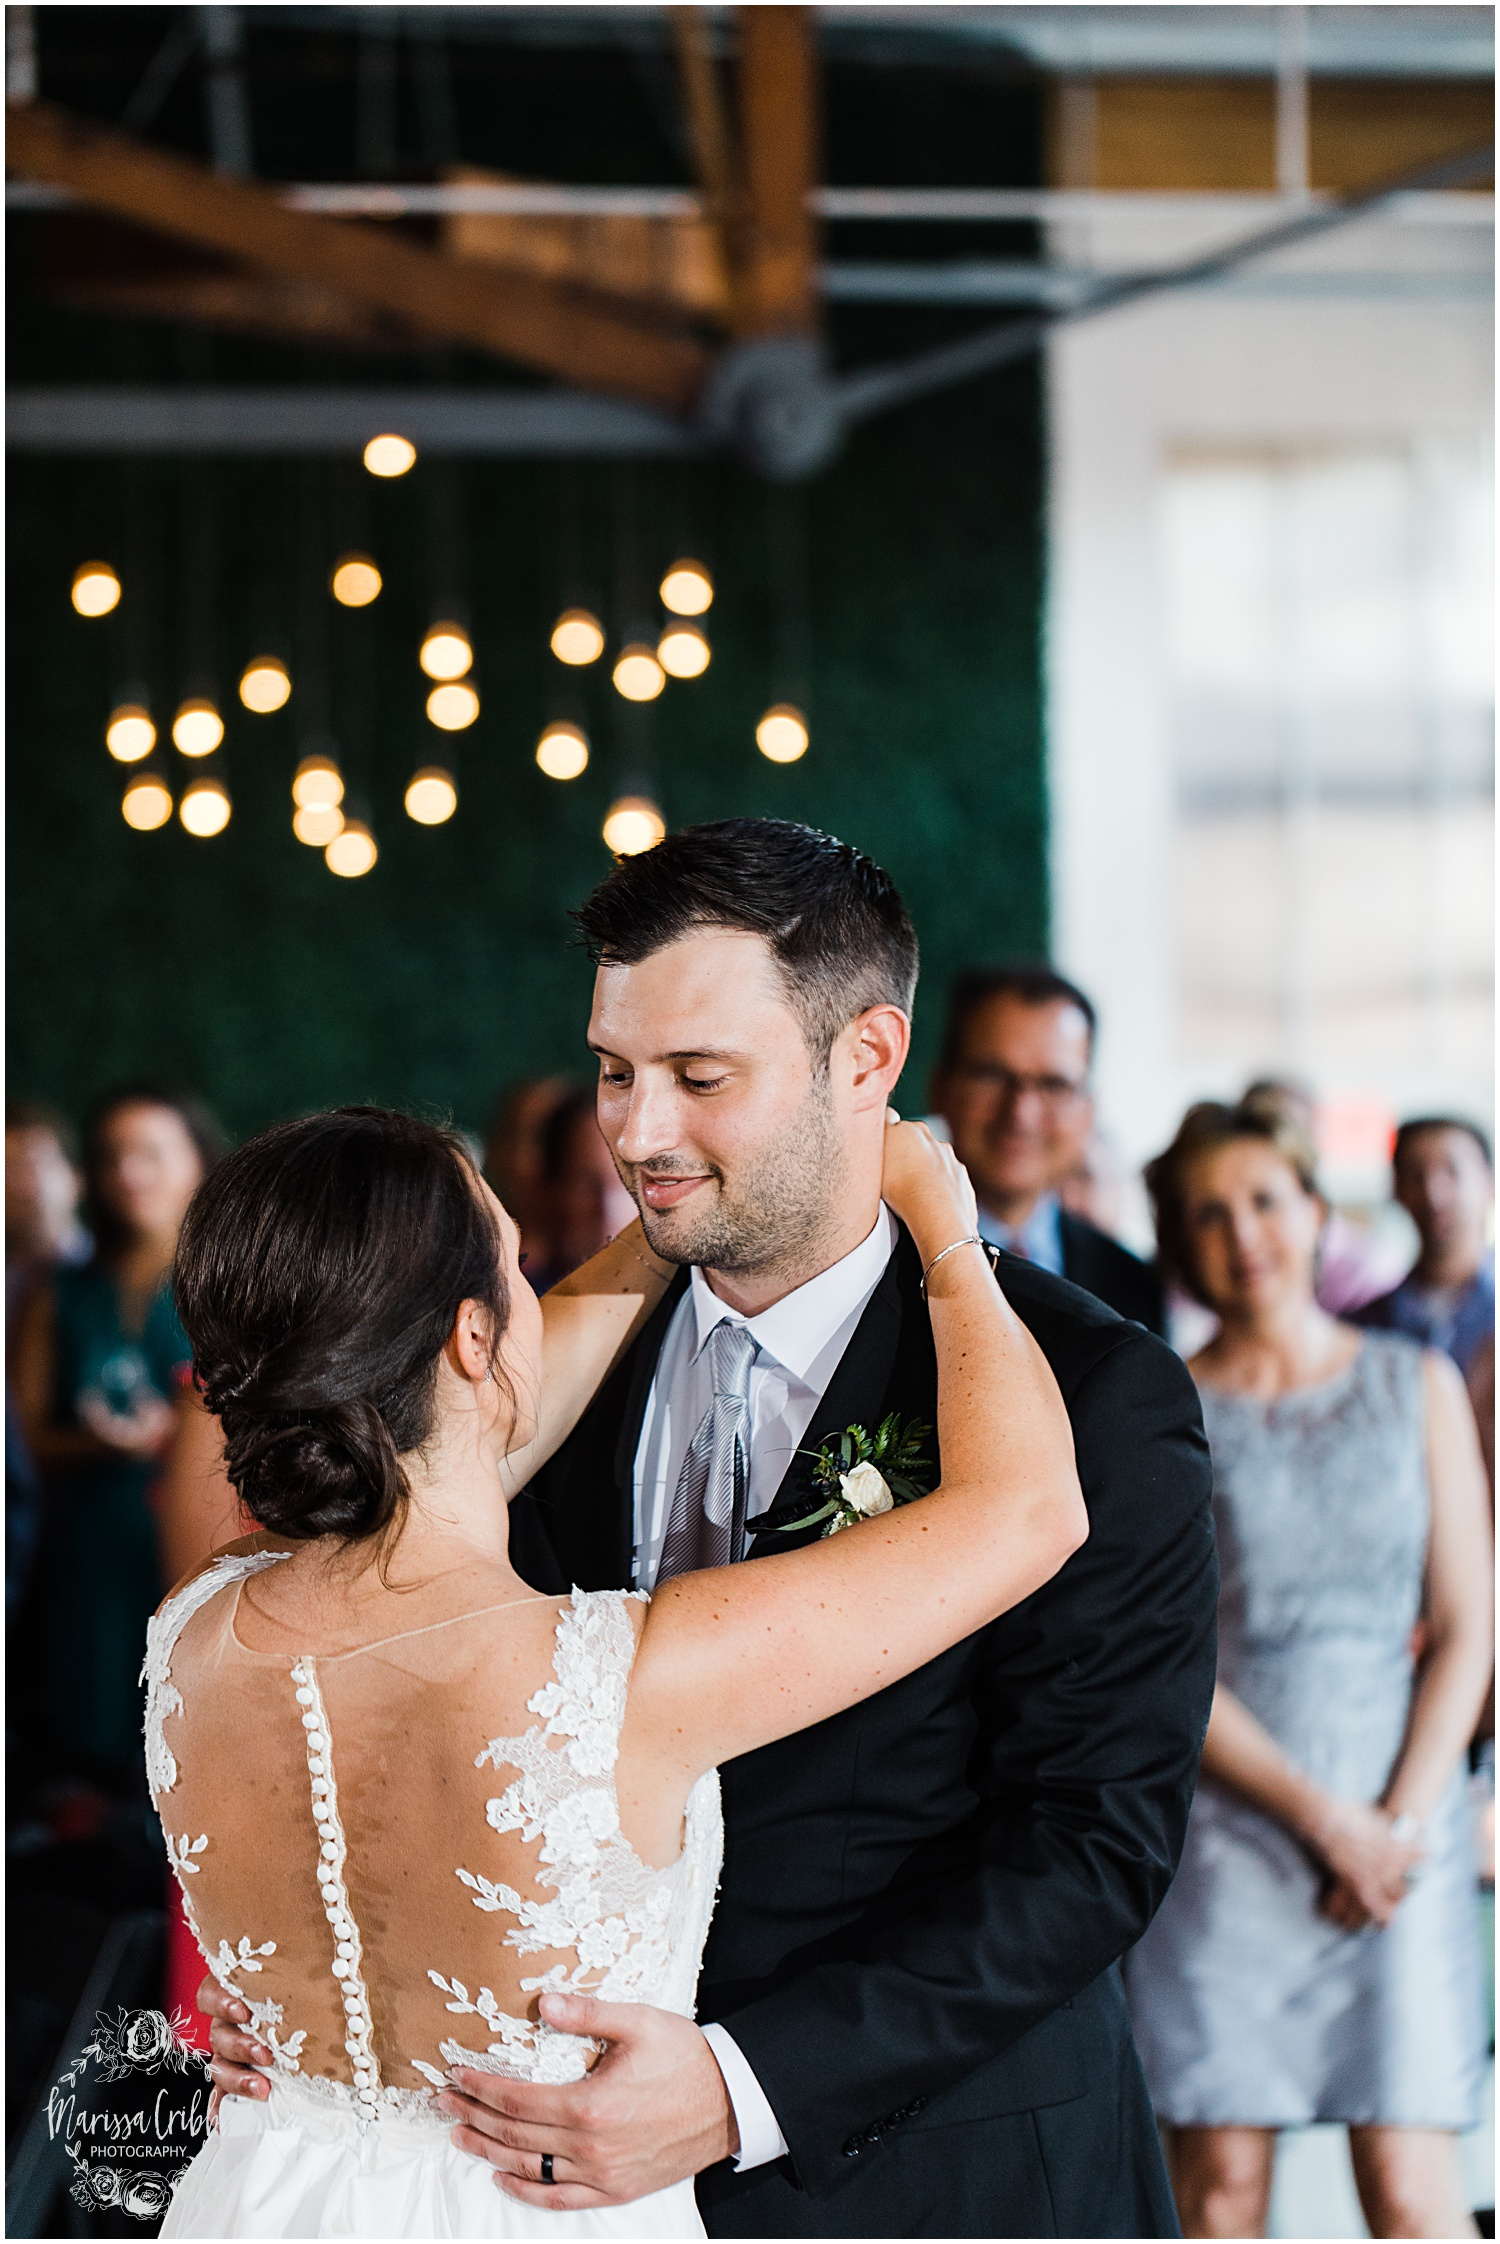 KELLY & MITCH MARRIED BLOG | MARISSA CRIBBS PHOTOGRAPHY | THE EVERLY EVENT SPACE_8904.jpg